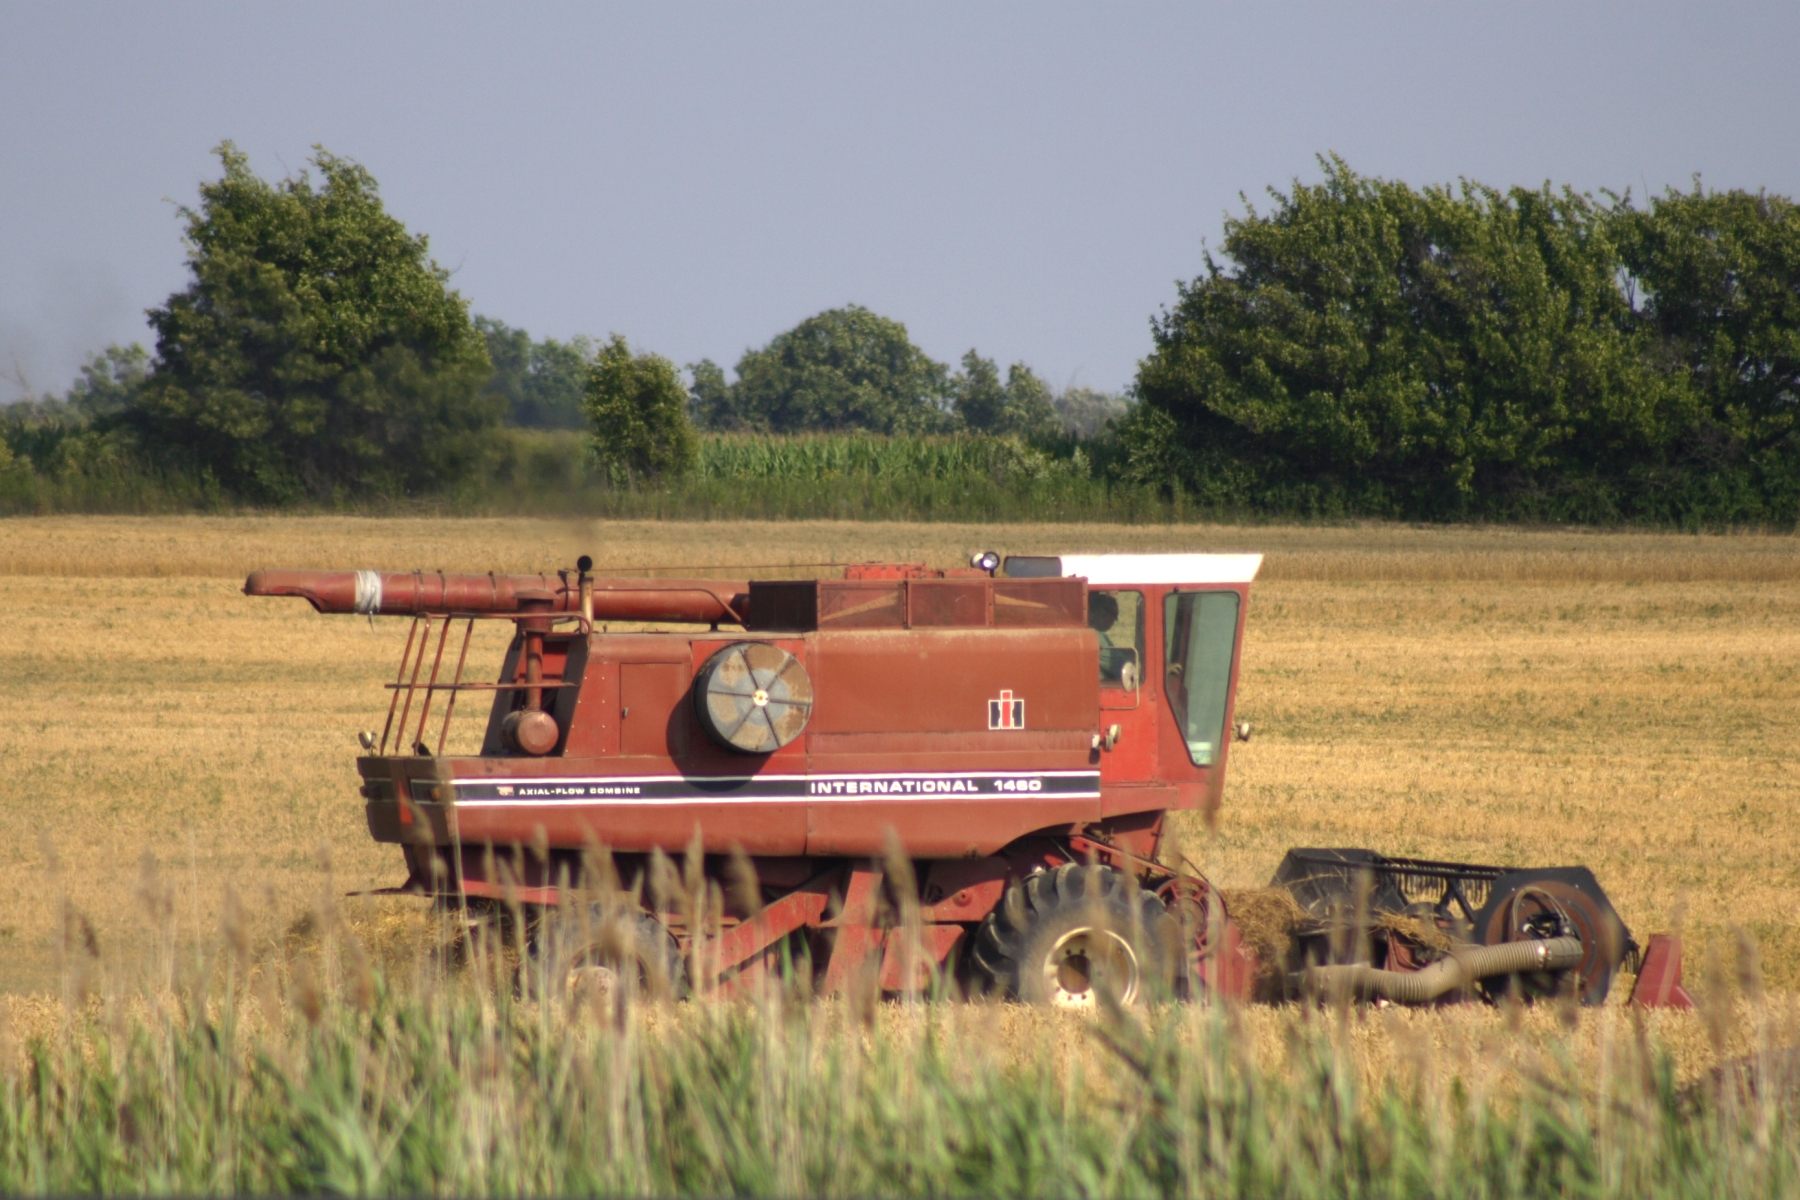 File:IHC International 1460 combine harvester jpg